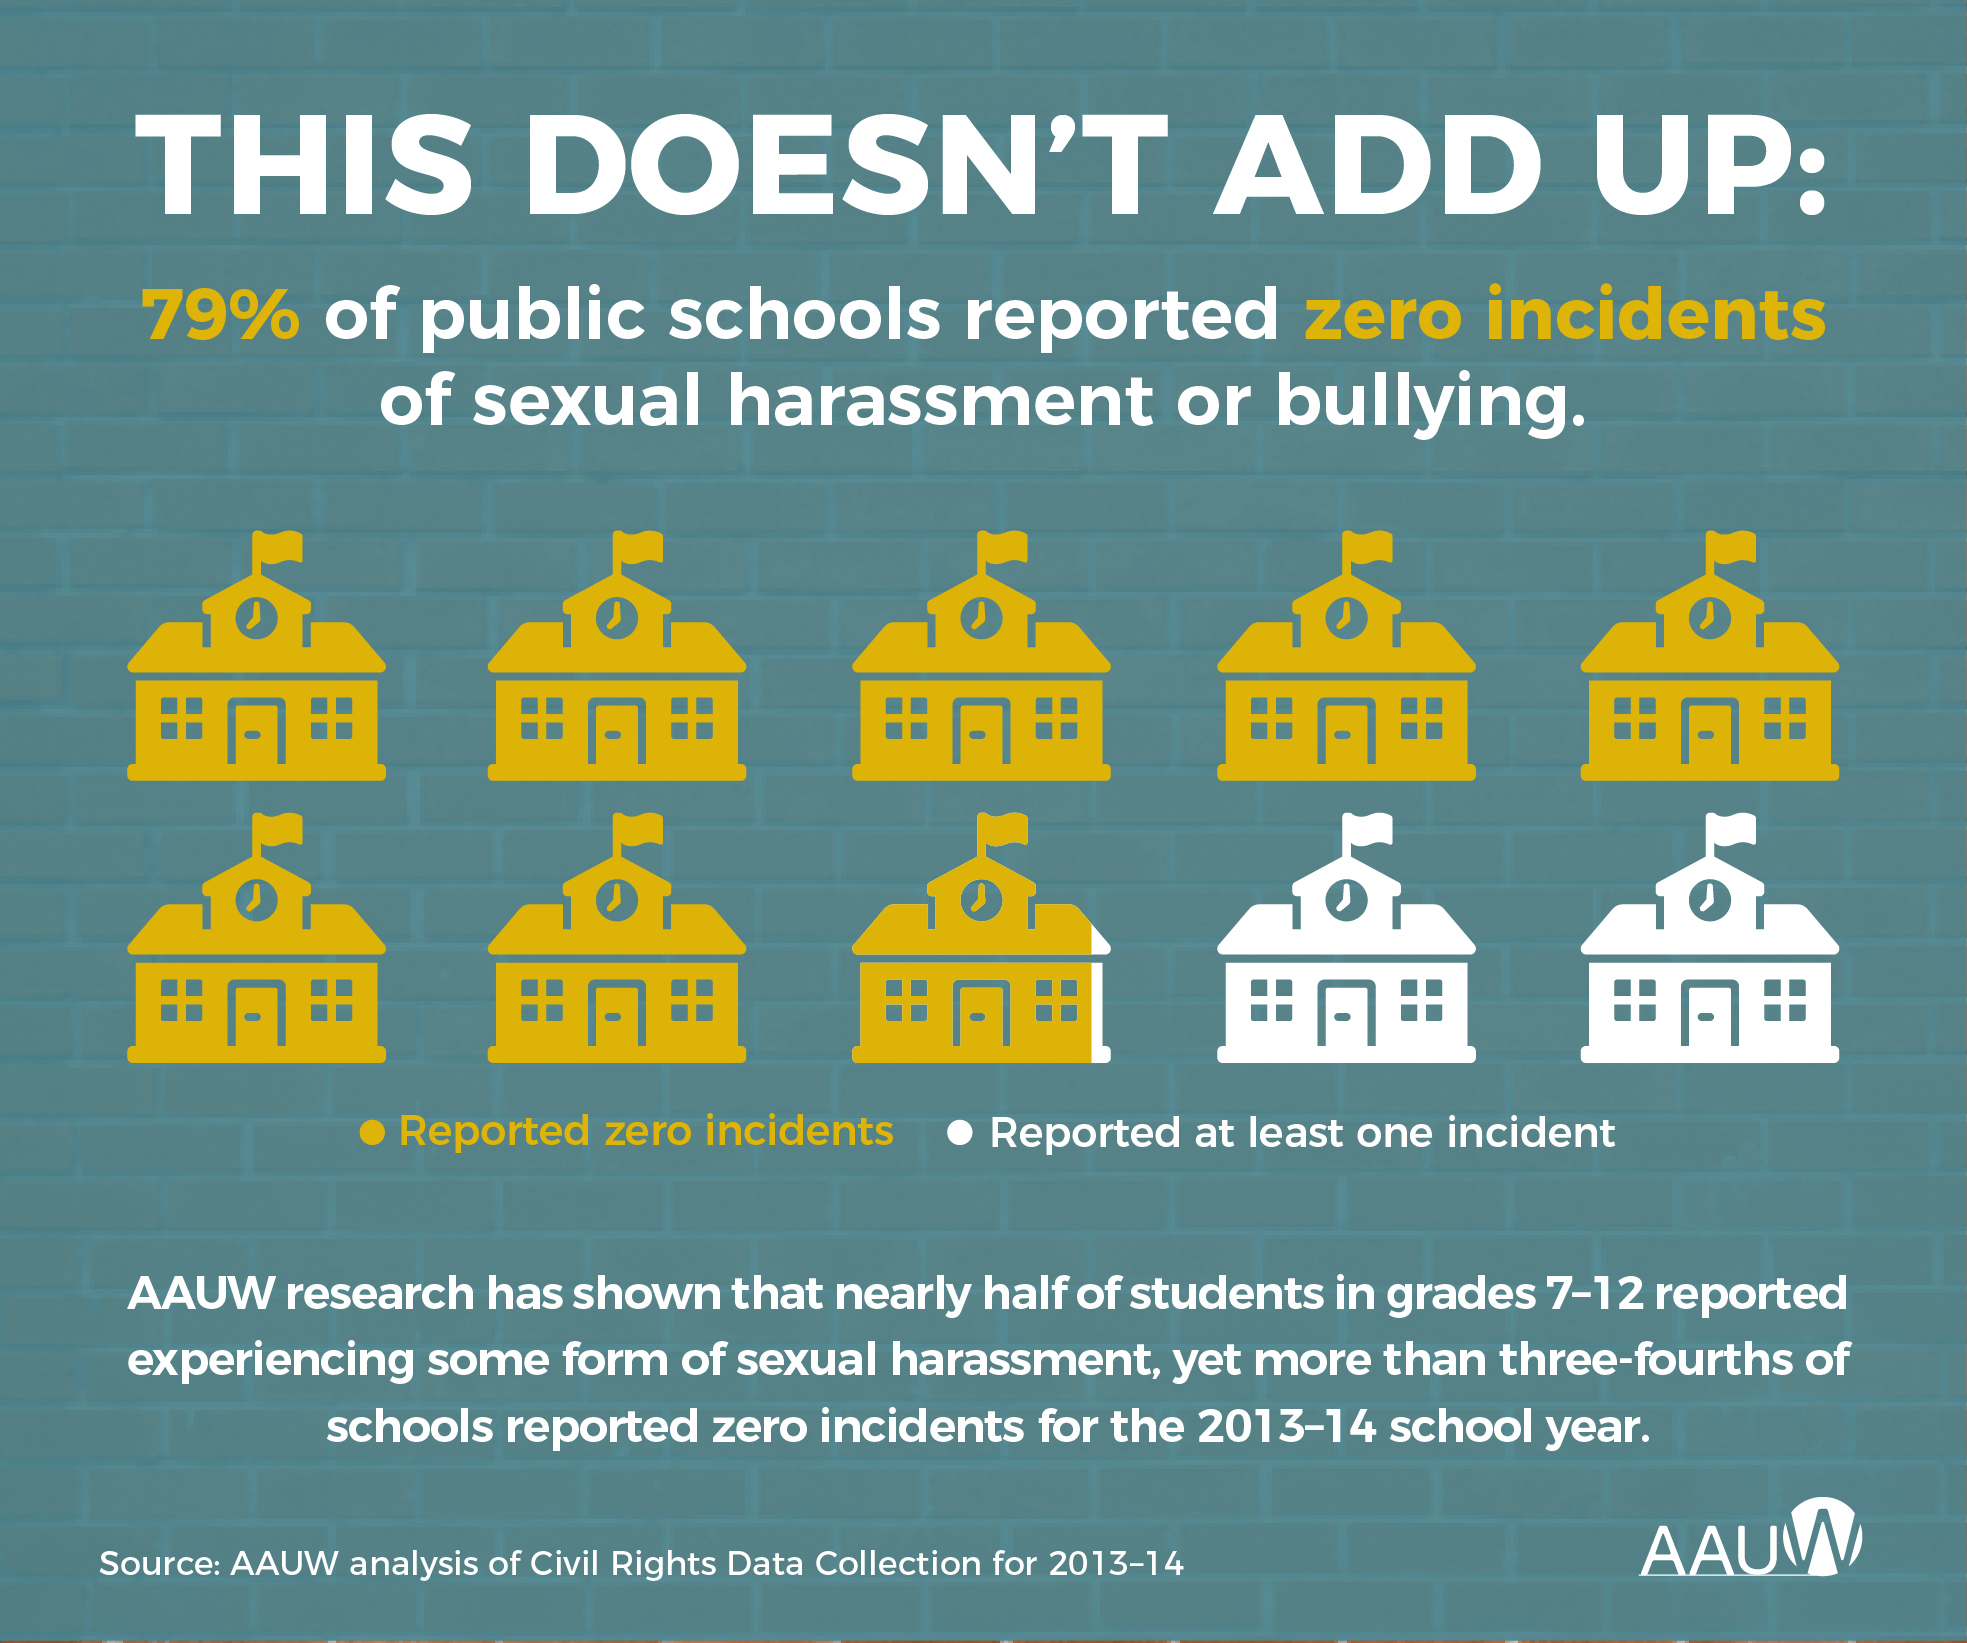 AAUW research has shown that nearly half of student in grades 7-12 reported experiencing some form of sexual harassment, yet more than three-fourths of schools reported zero incidents.